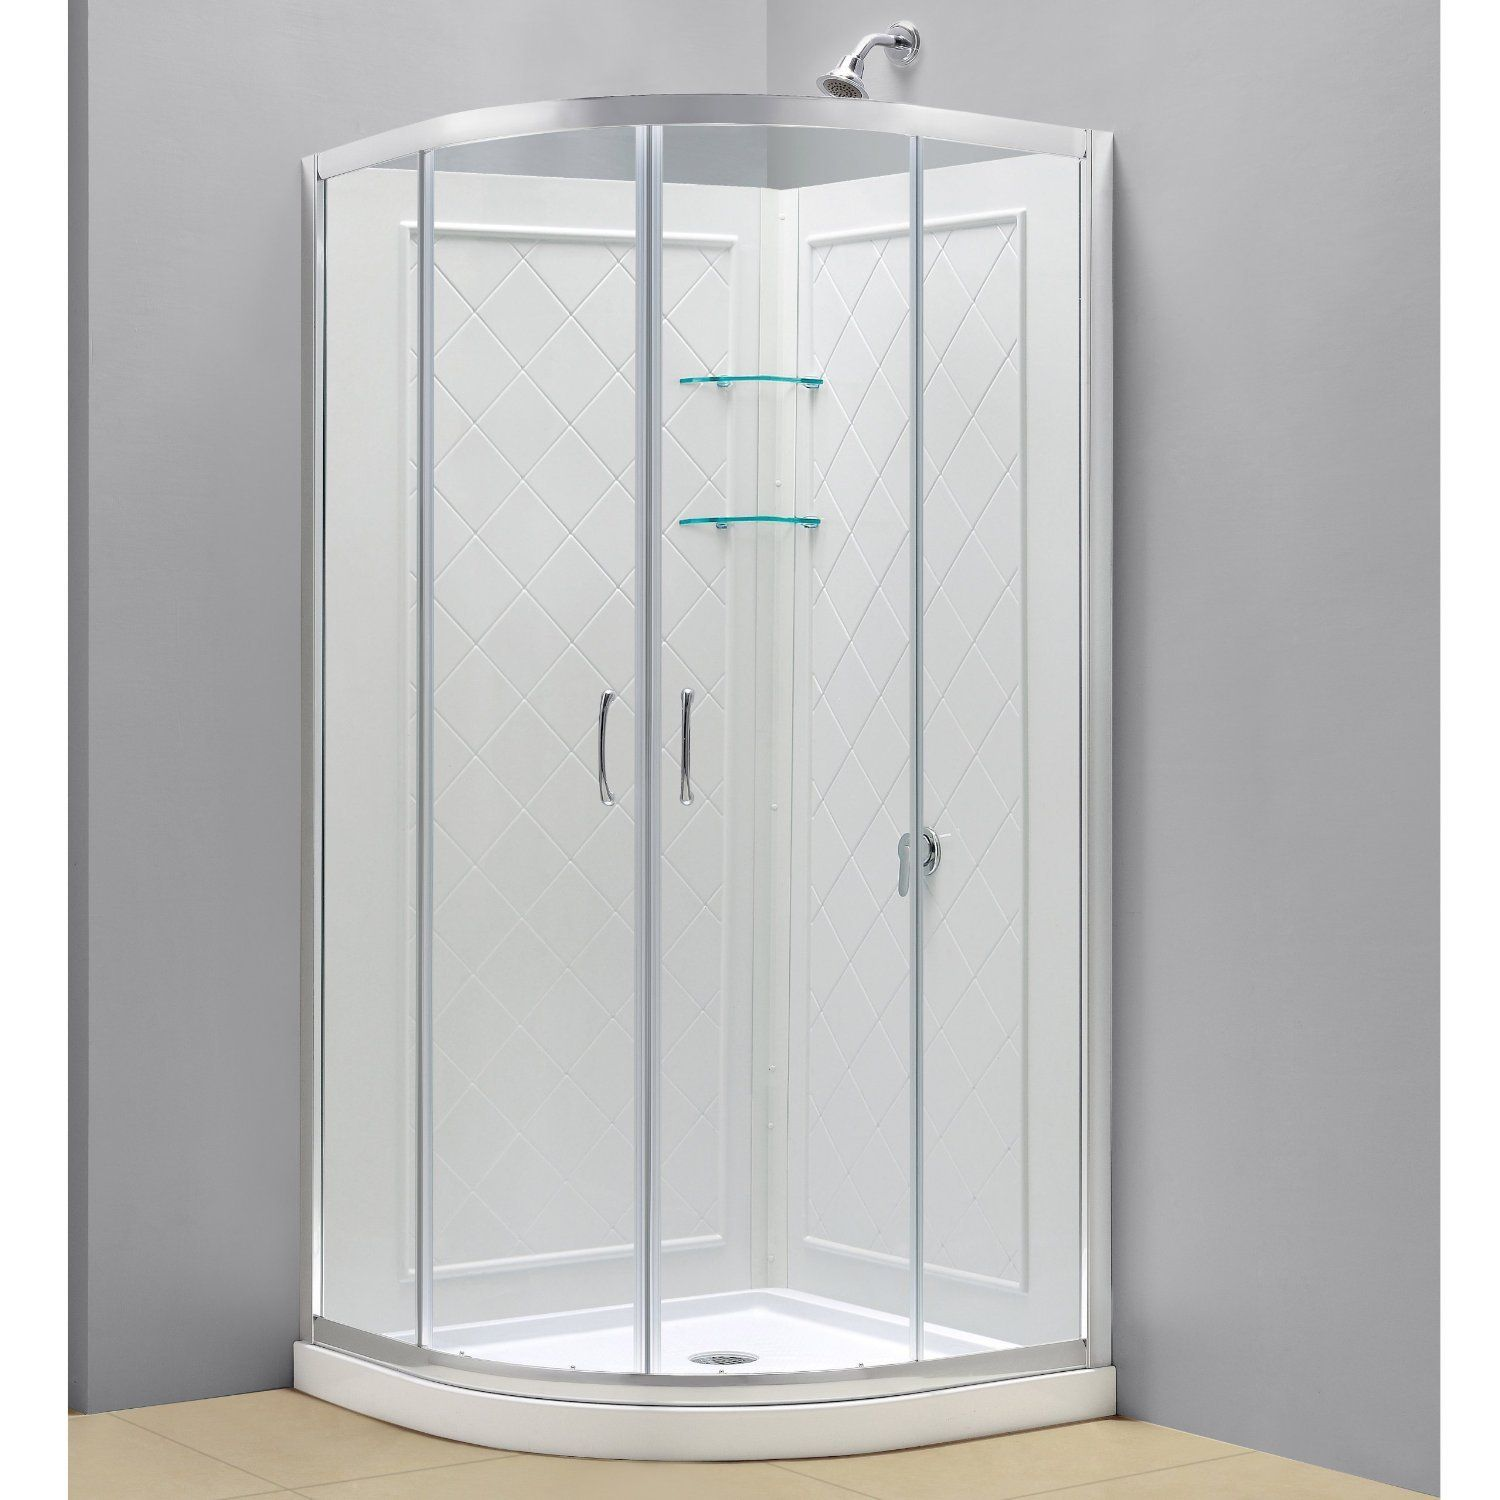 Shower Stalls Lowes Home Depot Shower Walls Lowes Shower Doors